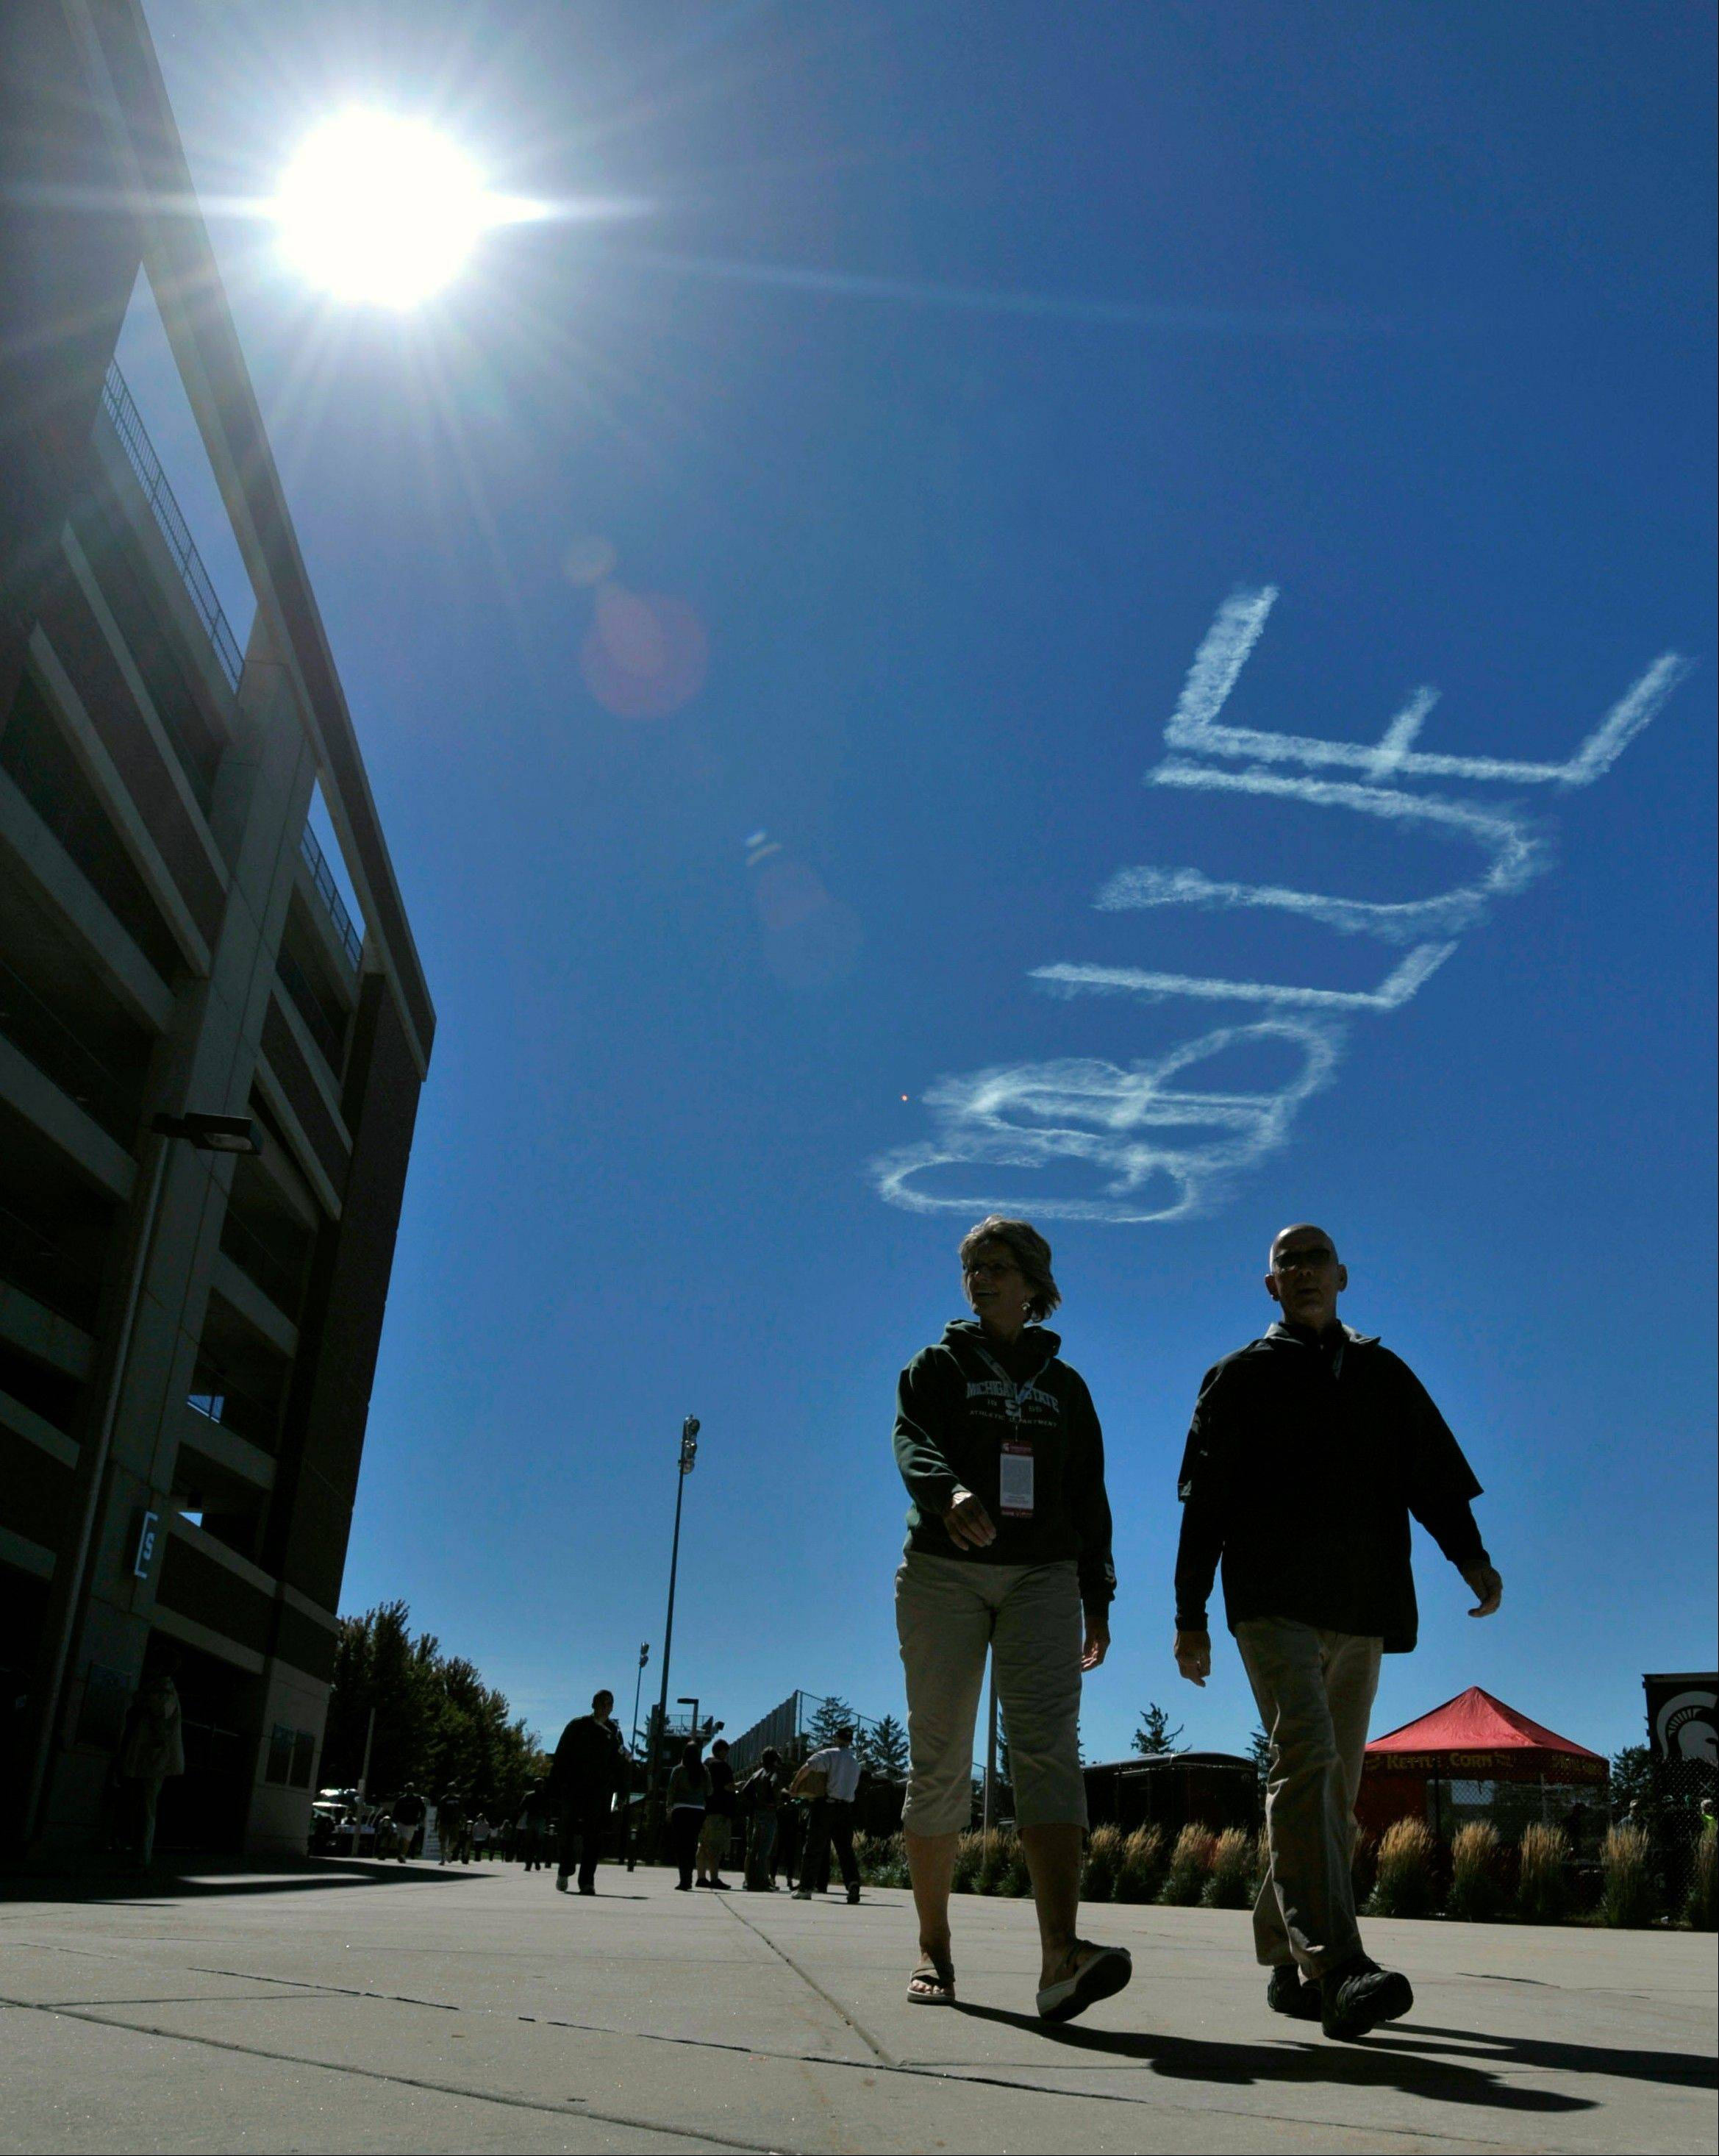 Michigan athletics dept. behind skywriting at rival Michigan State